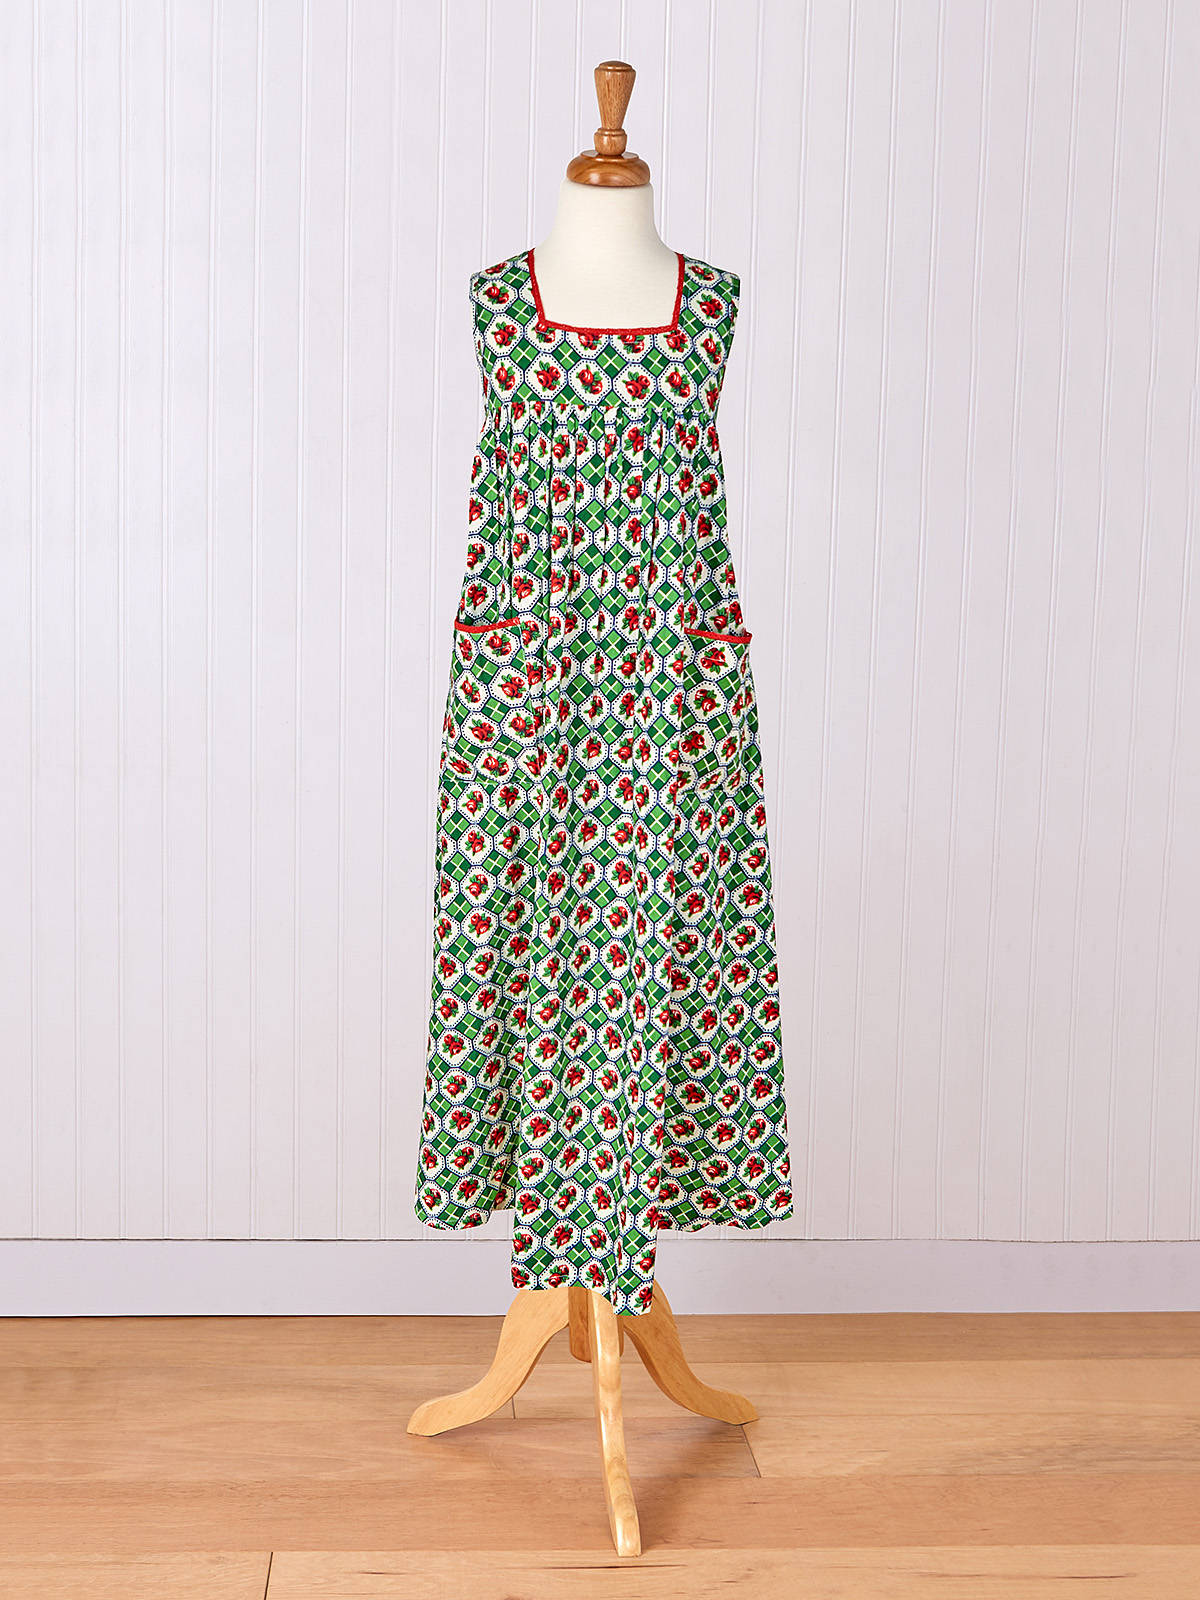 Mabel Young Lady Dress